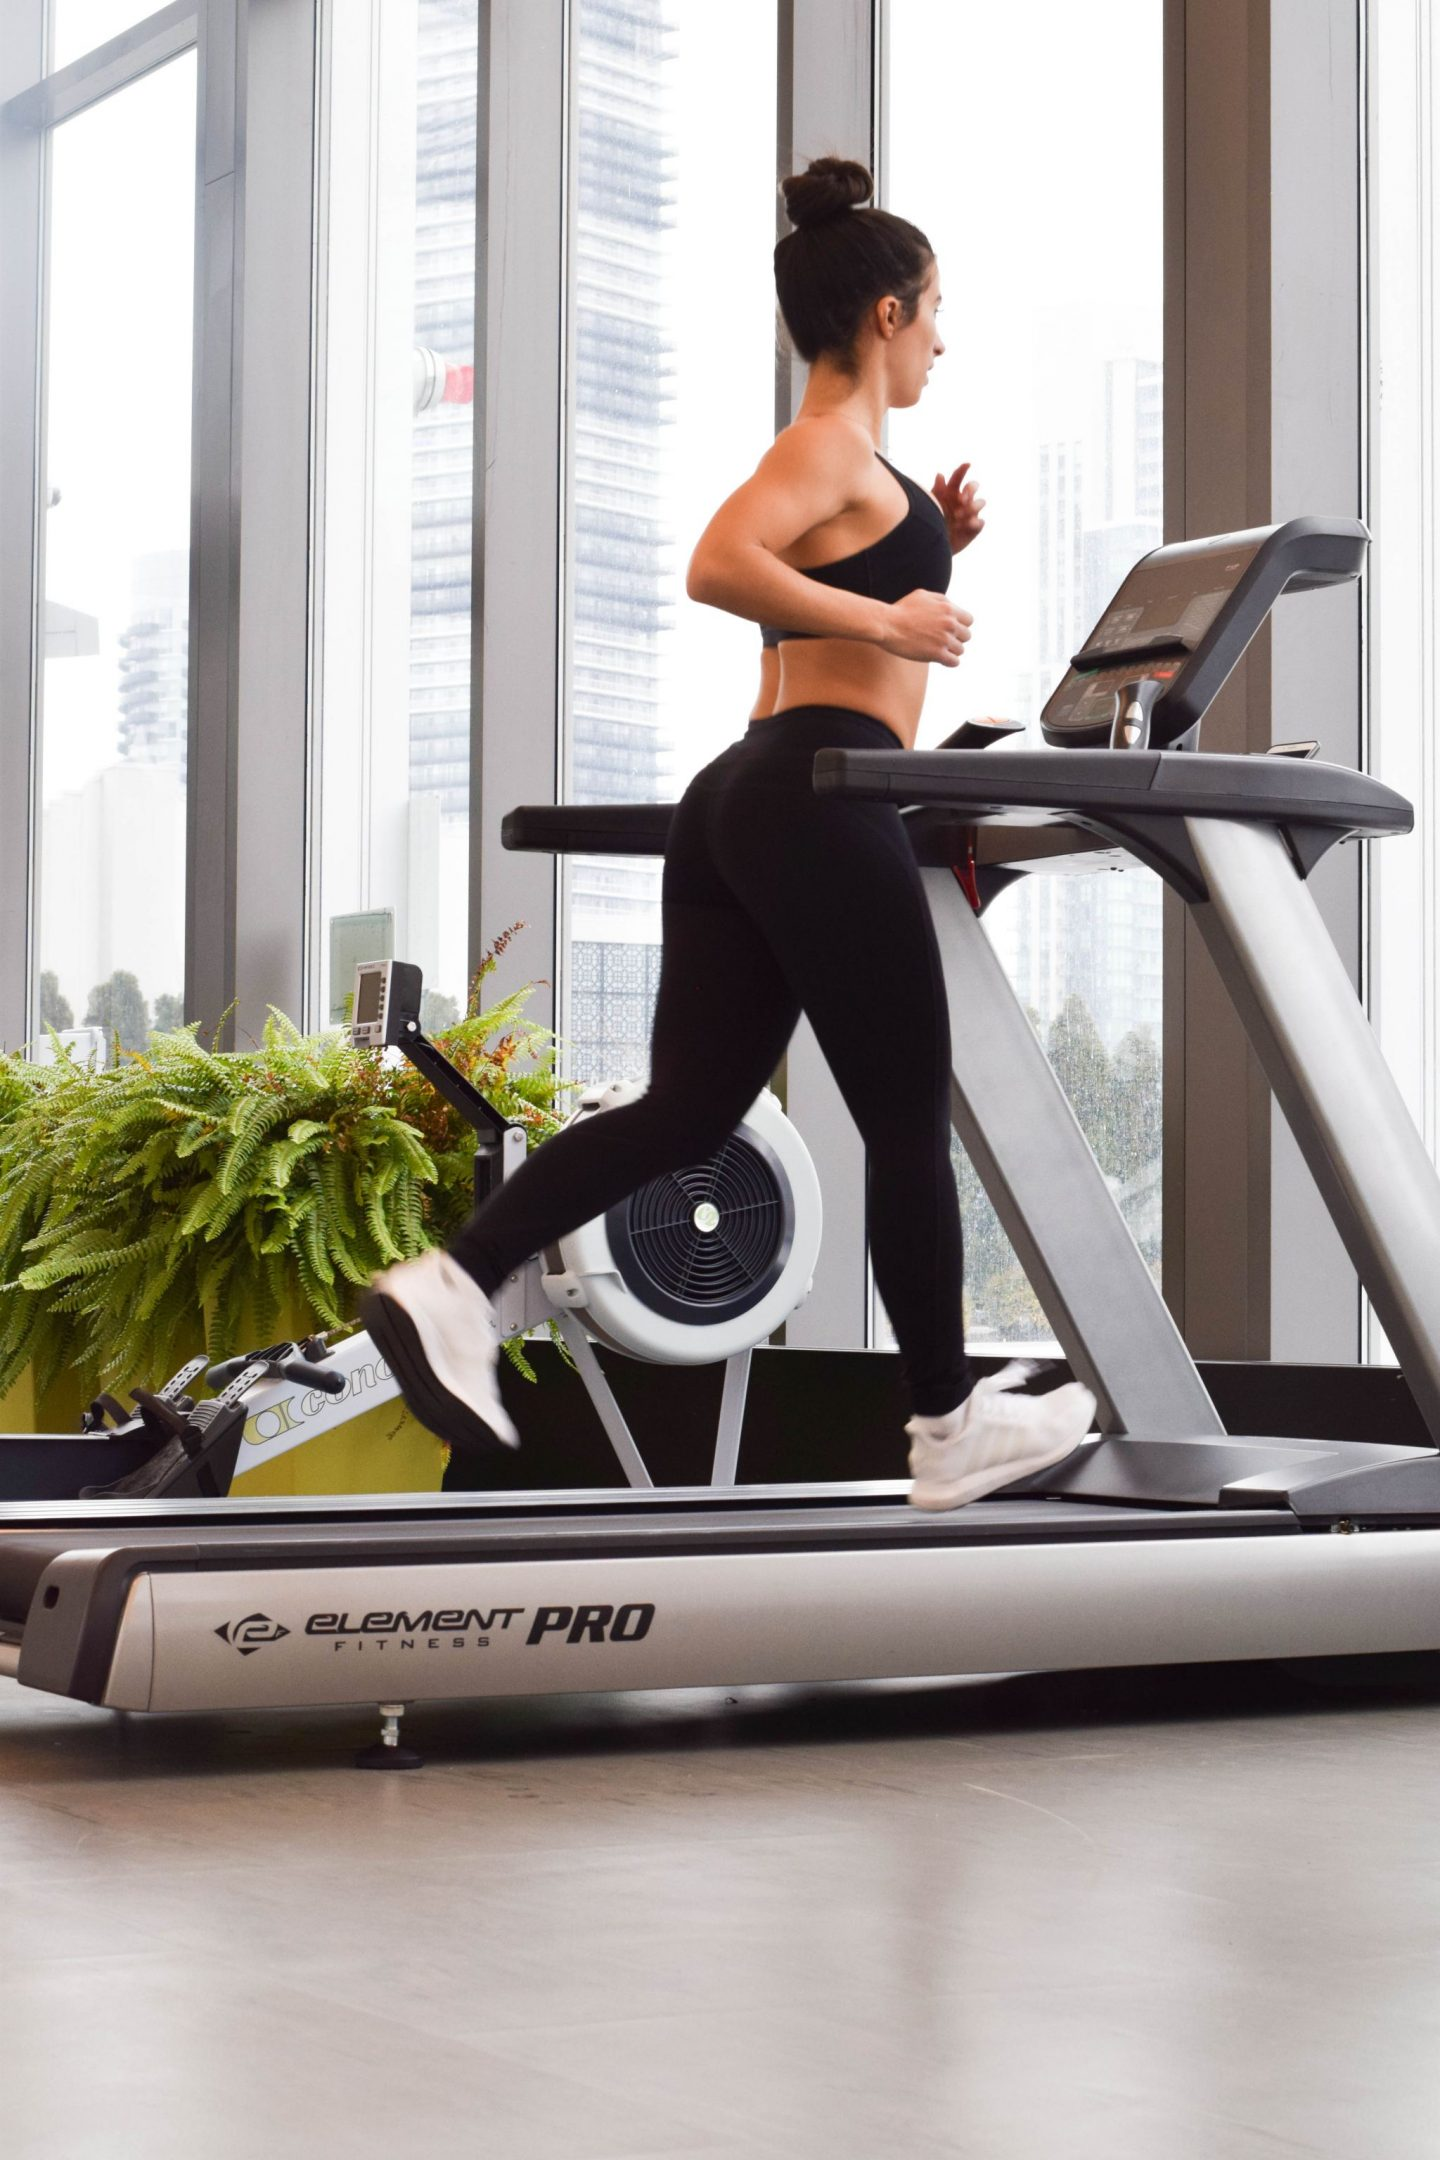 Fitness: Warming Up + Interval Running On The Treadmill